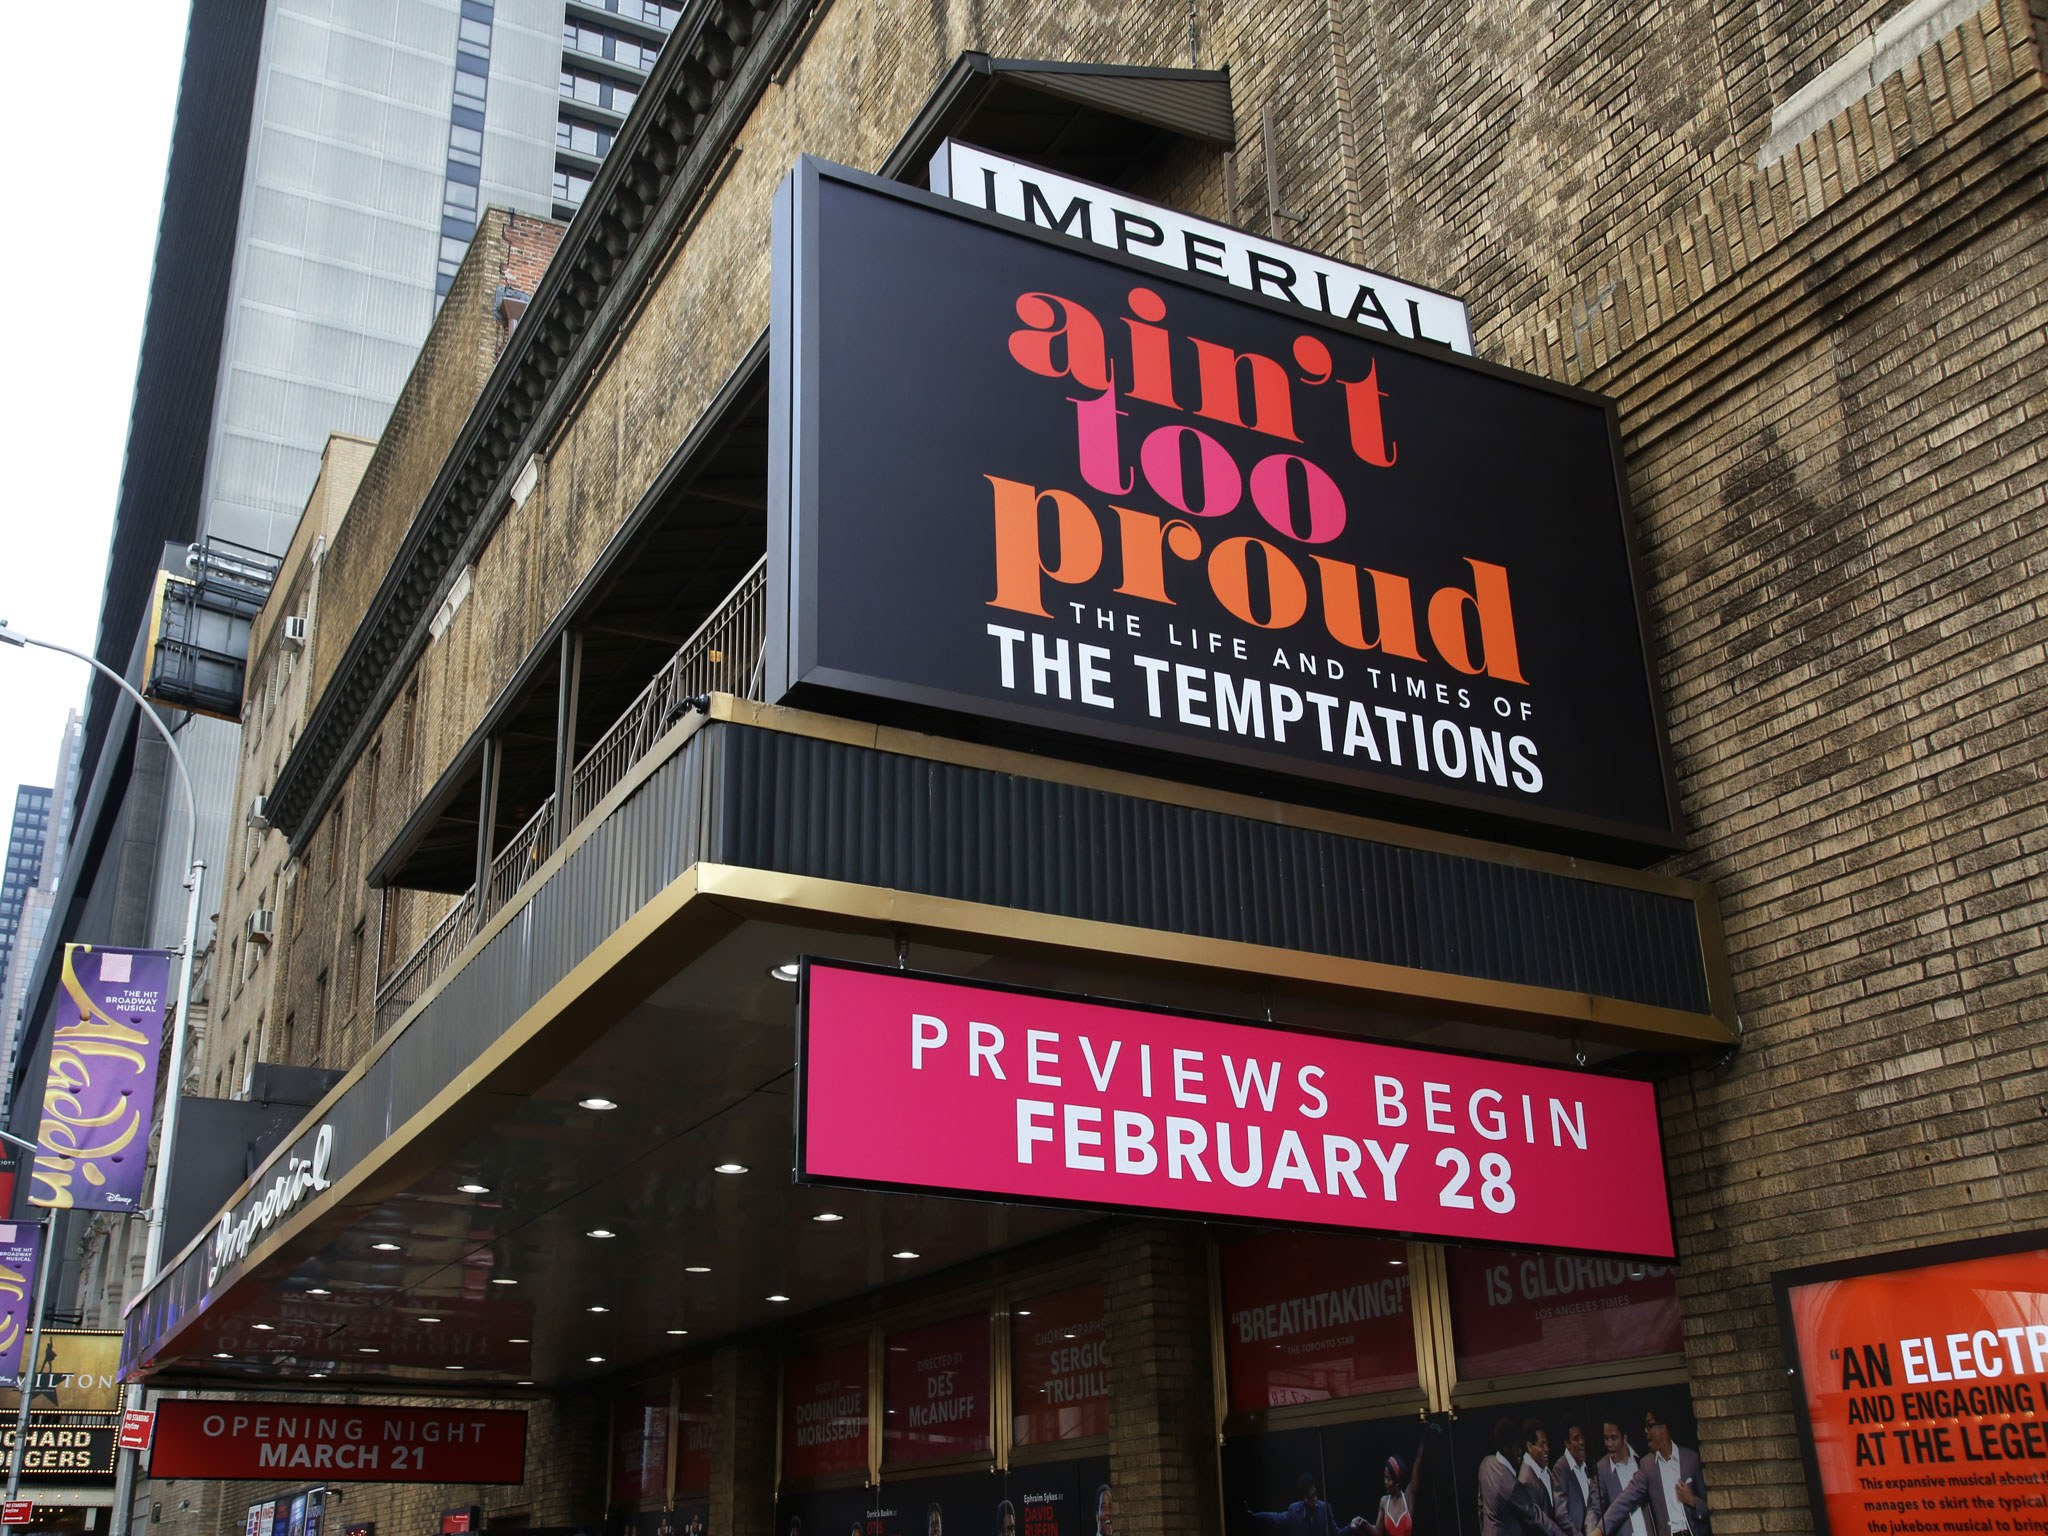 Ain't Too Proud - The Life and Times of the Temptations Imperial Theatre Marquee